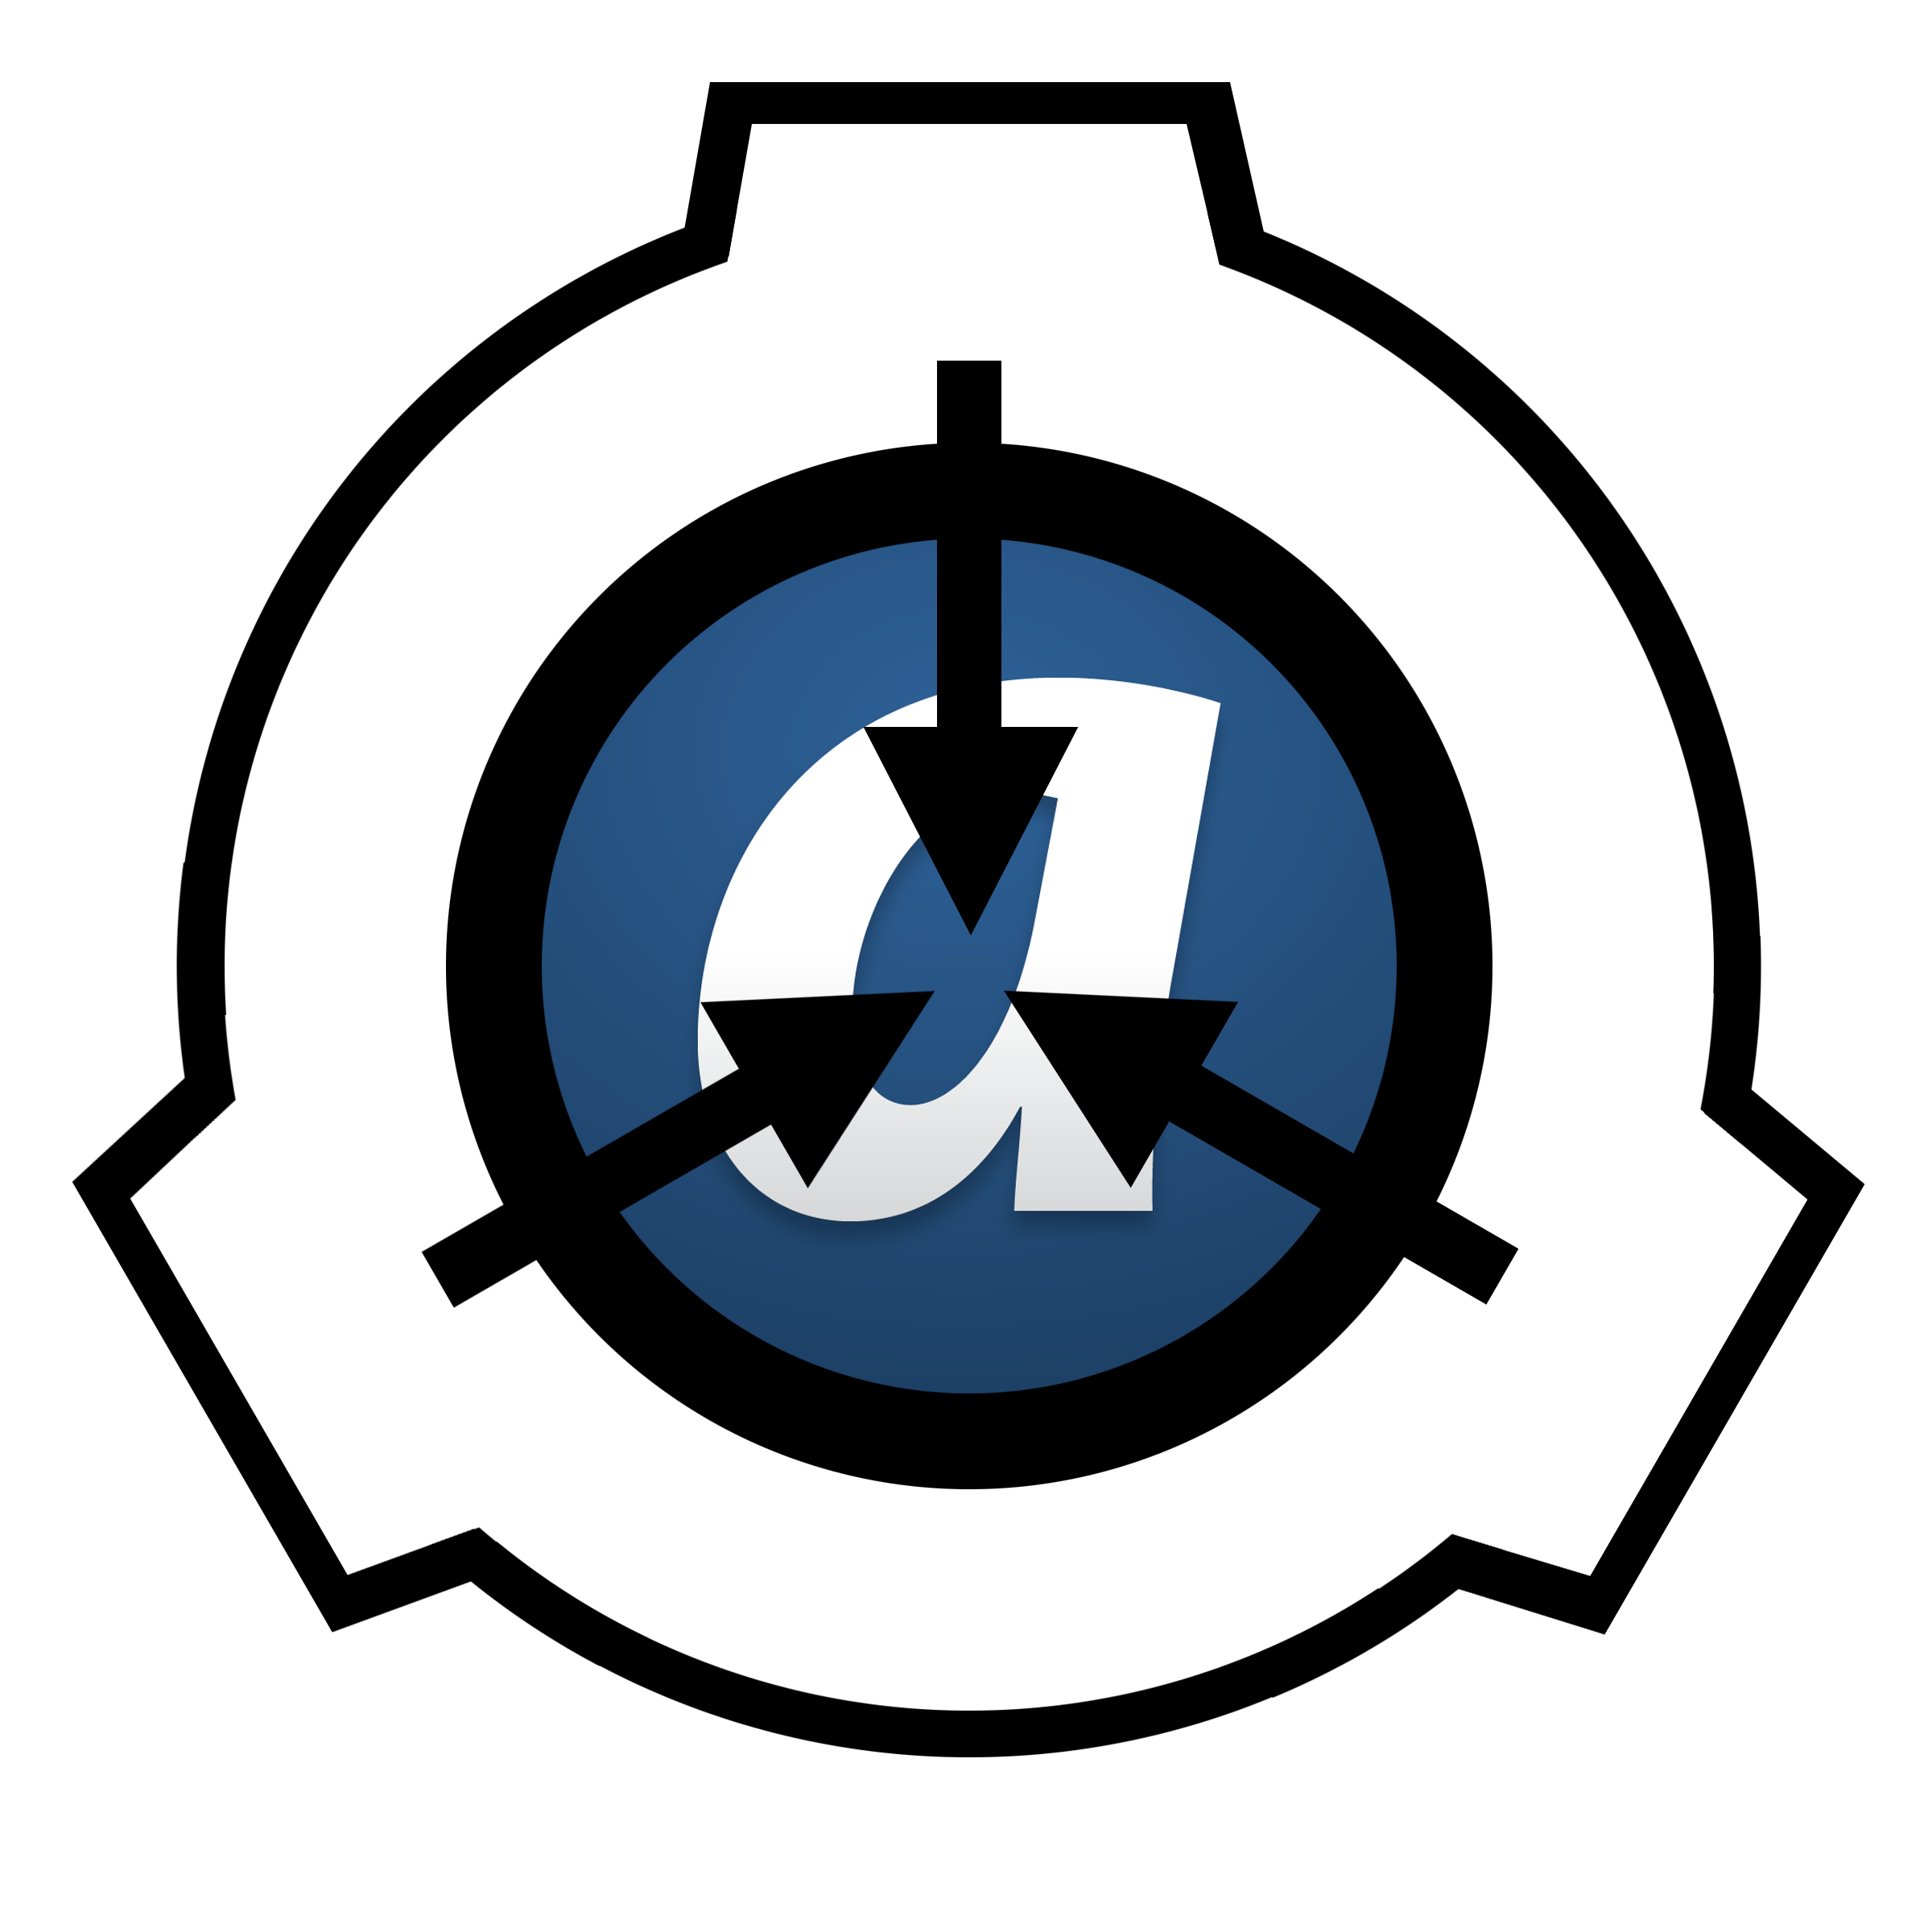 icon-askfm2.png